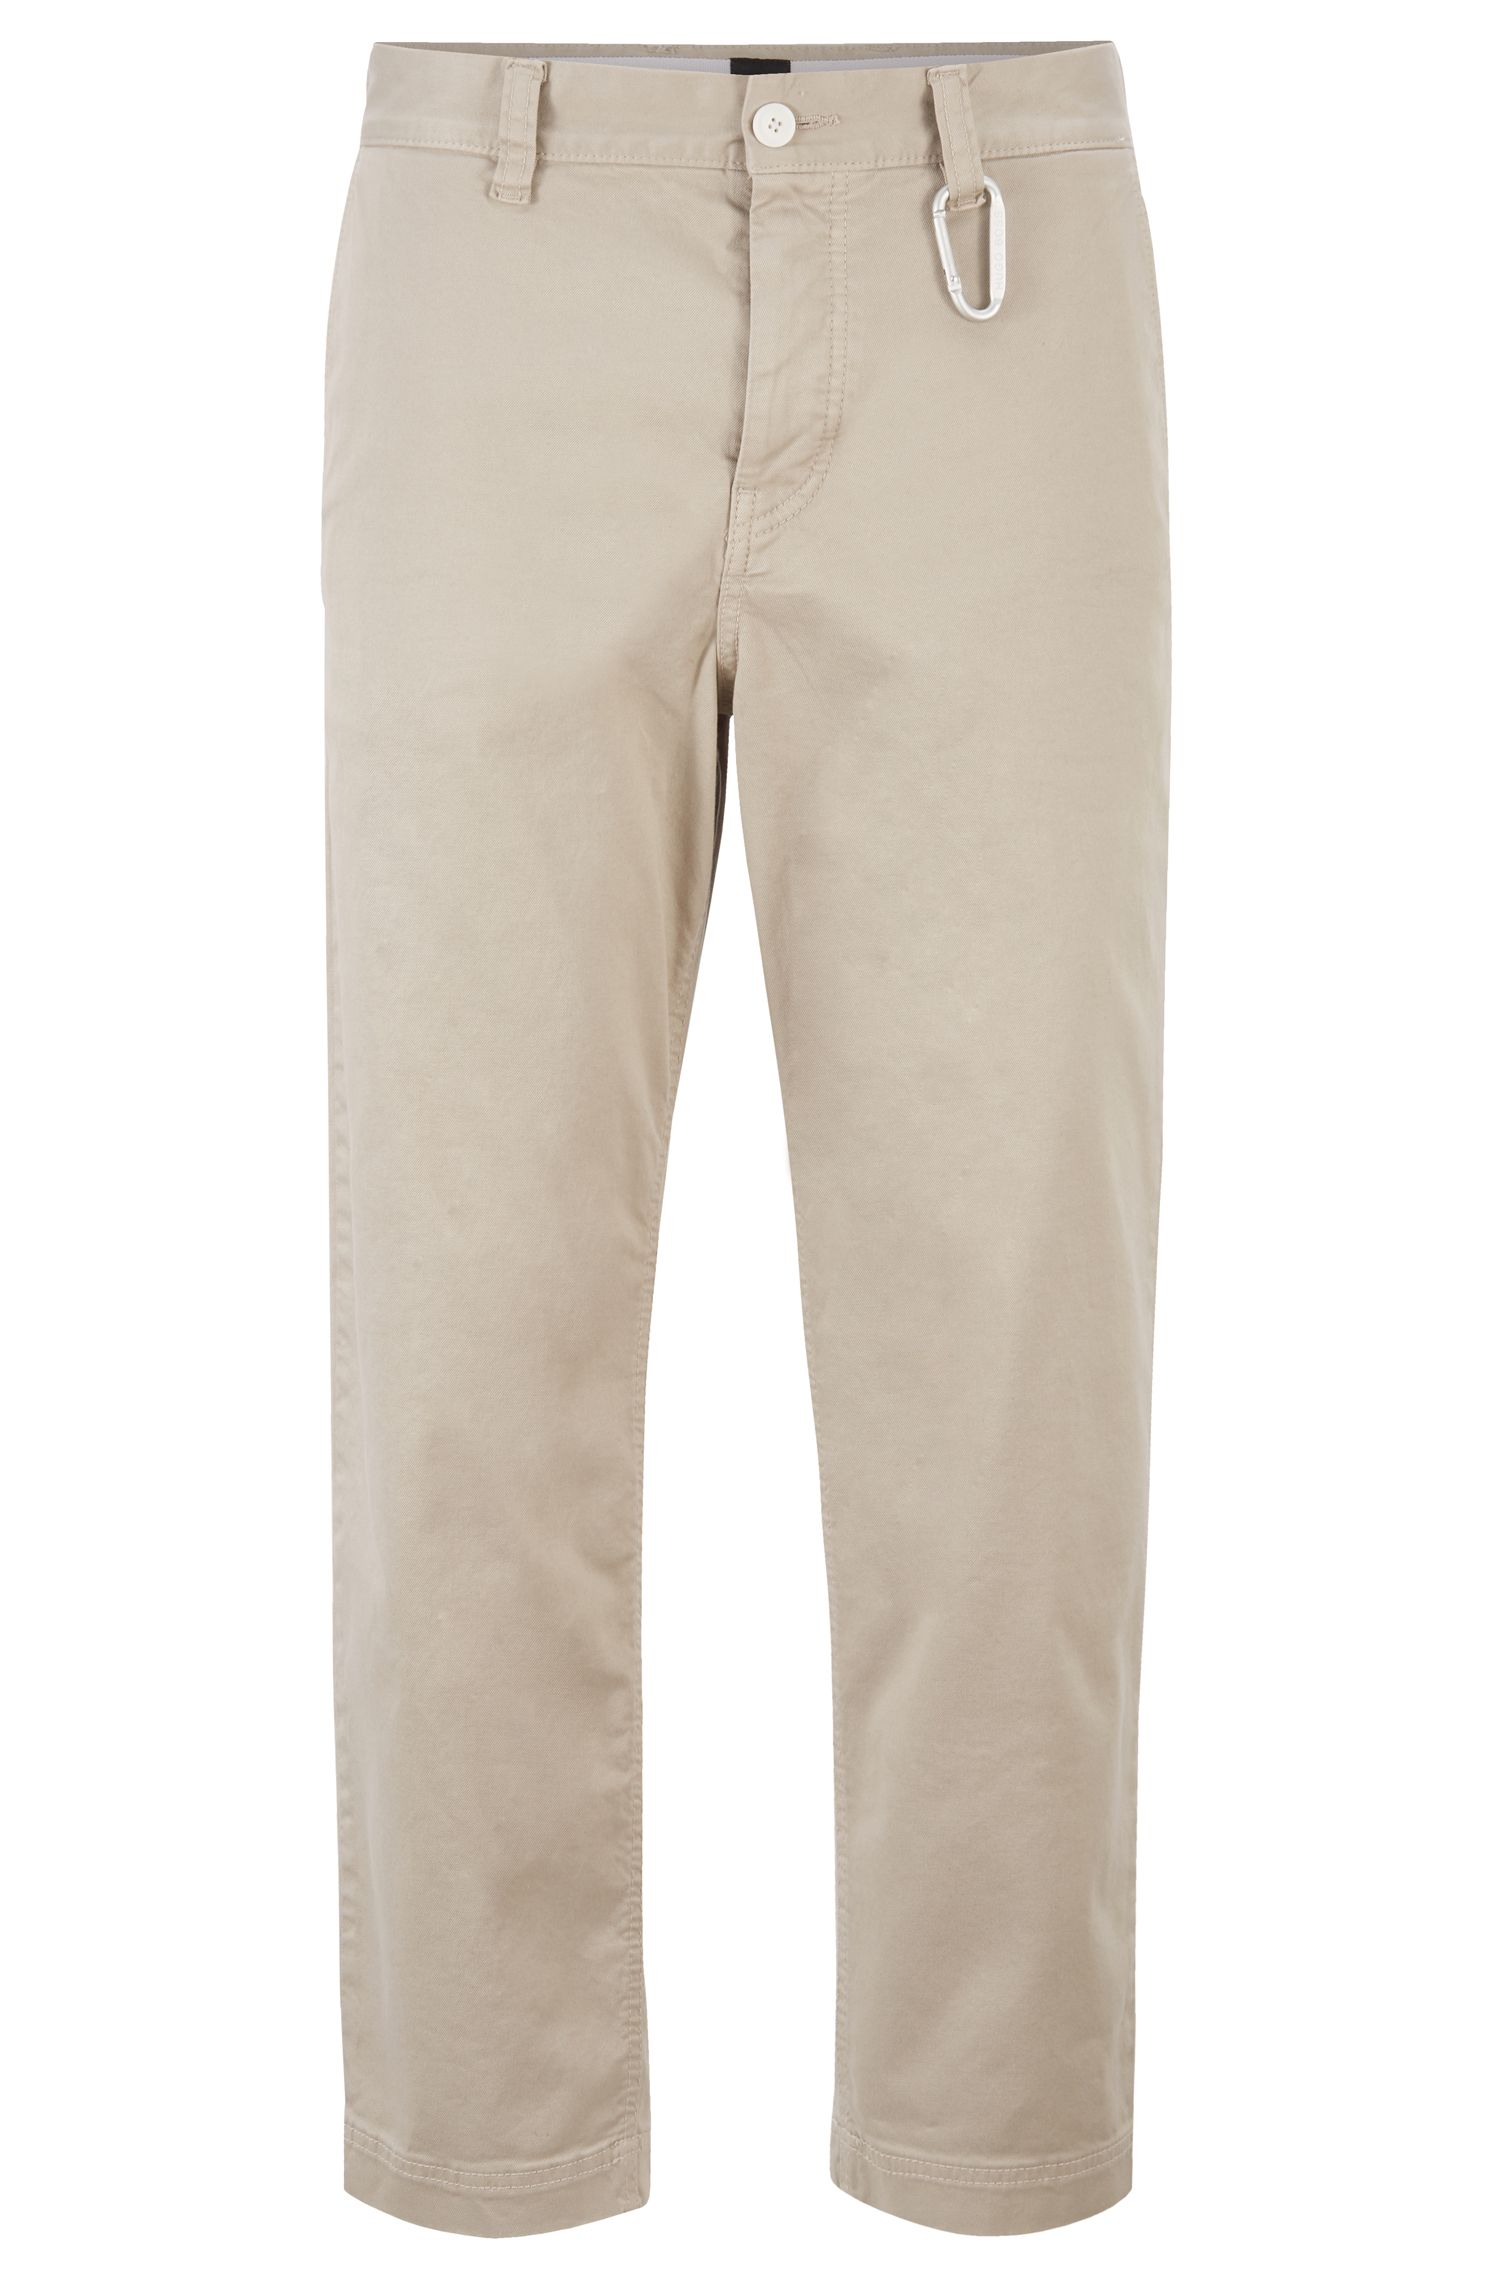 Tapered-Fit Hose in Cropped-Länge mit Karabinerhaken, Hellbeige